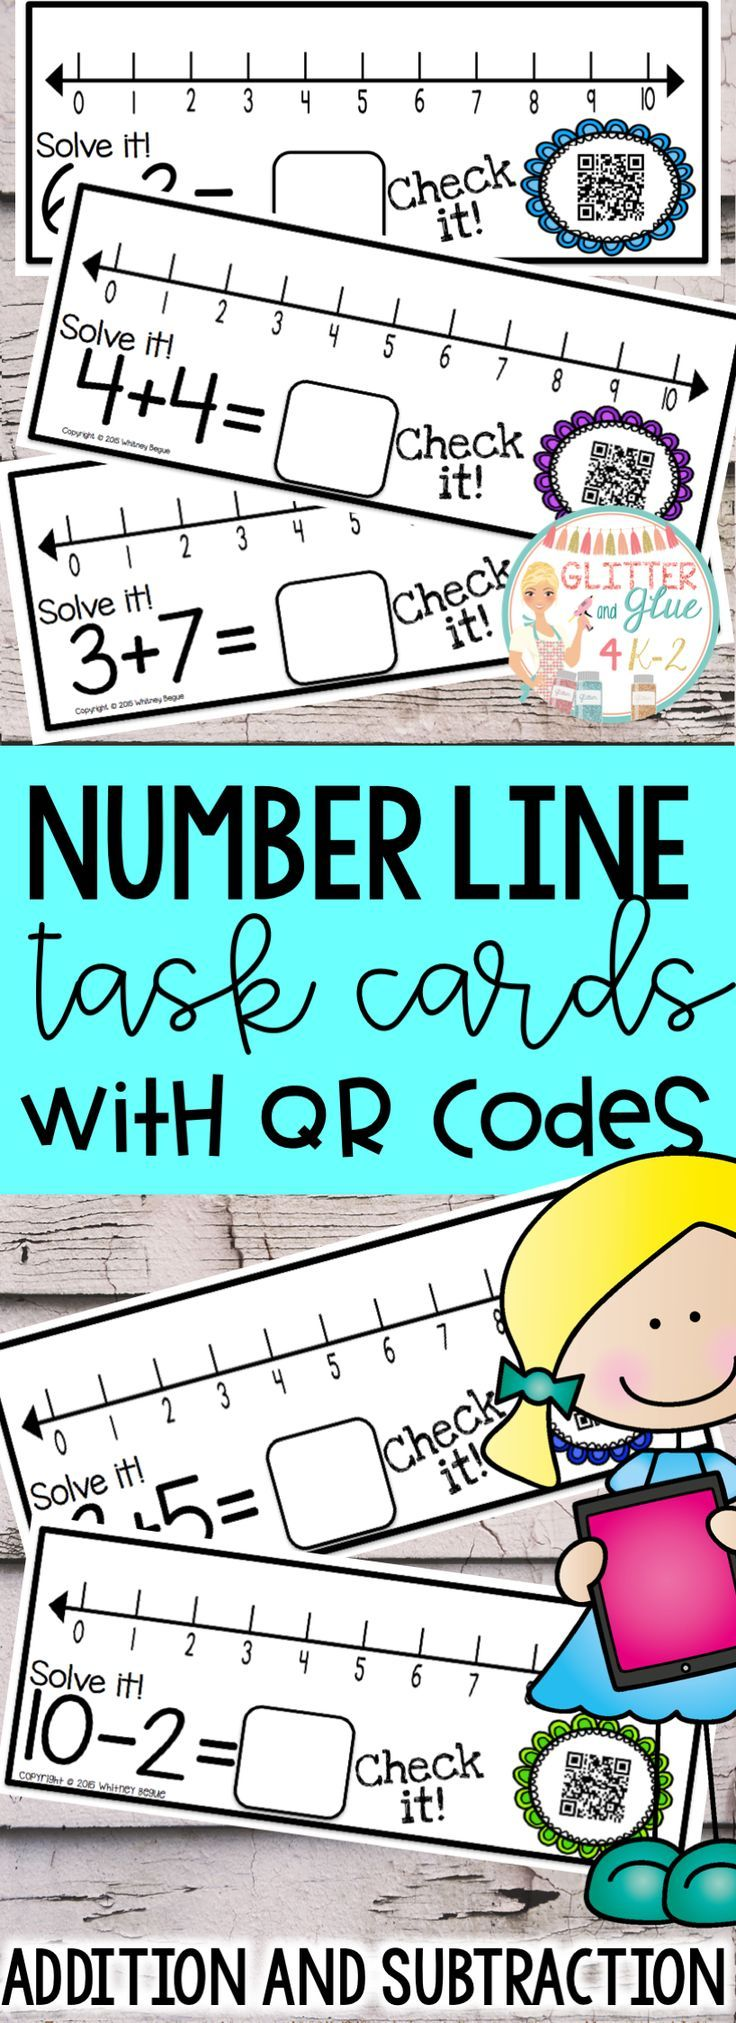 Help your students add and subtract using a number line! All you need are these printable cards and a QR Reader. This resource is perfect to introduce and reinforce addition and subtraction using a number line! The answers range from 0-10. Included are 97 task cards with addition and subtraction problems, a number line, and a QR code linked to the answer. Keywords: kindergarten, math centers, addition, subtraction, iPads, first grade, intervention, special education